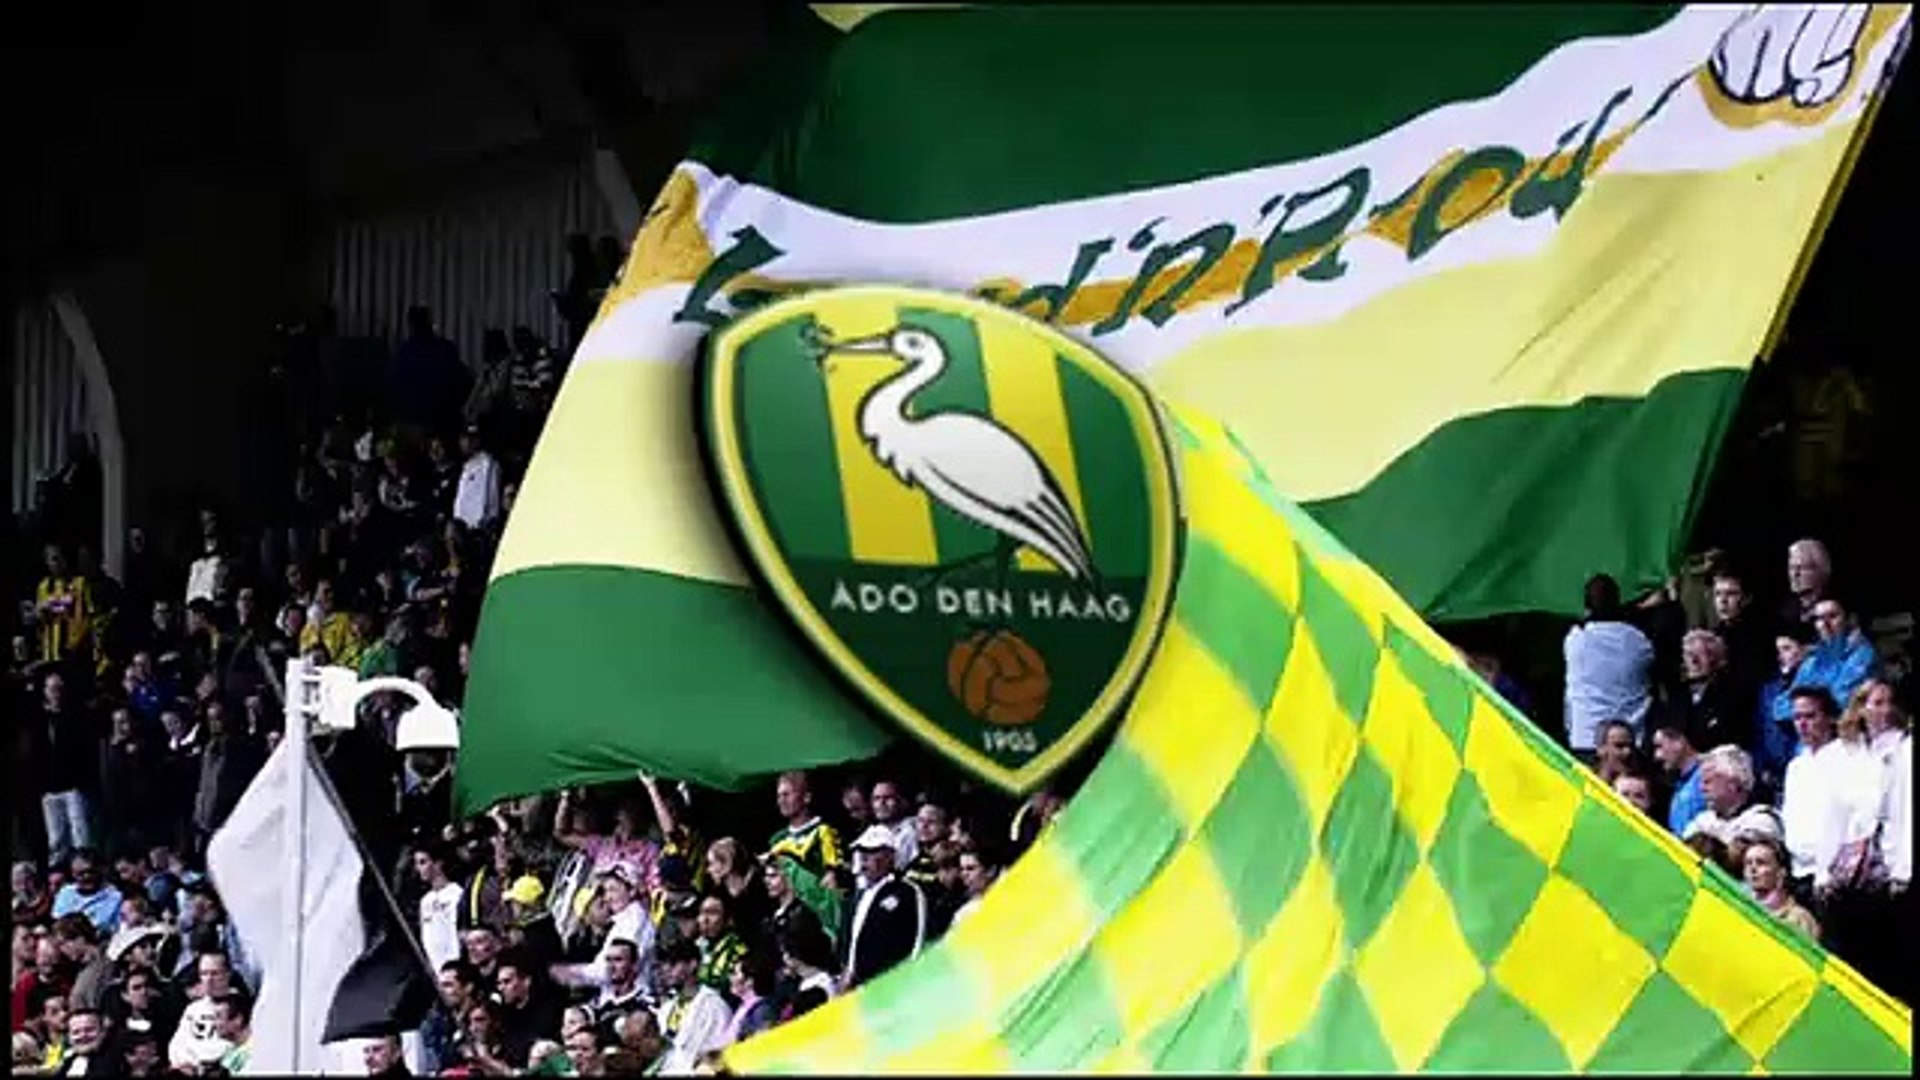 Eredivisie Helden 2000 2010 Ado Den Haag Lex Immers Video Dailymotion